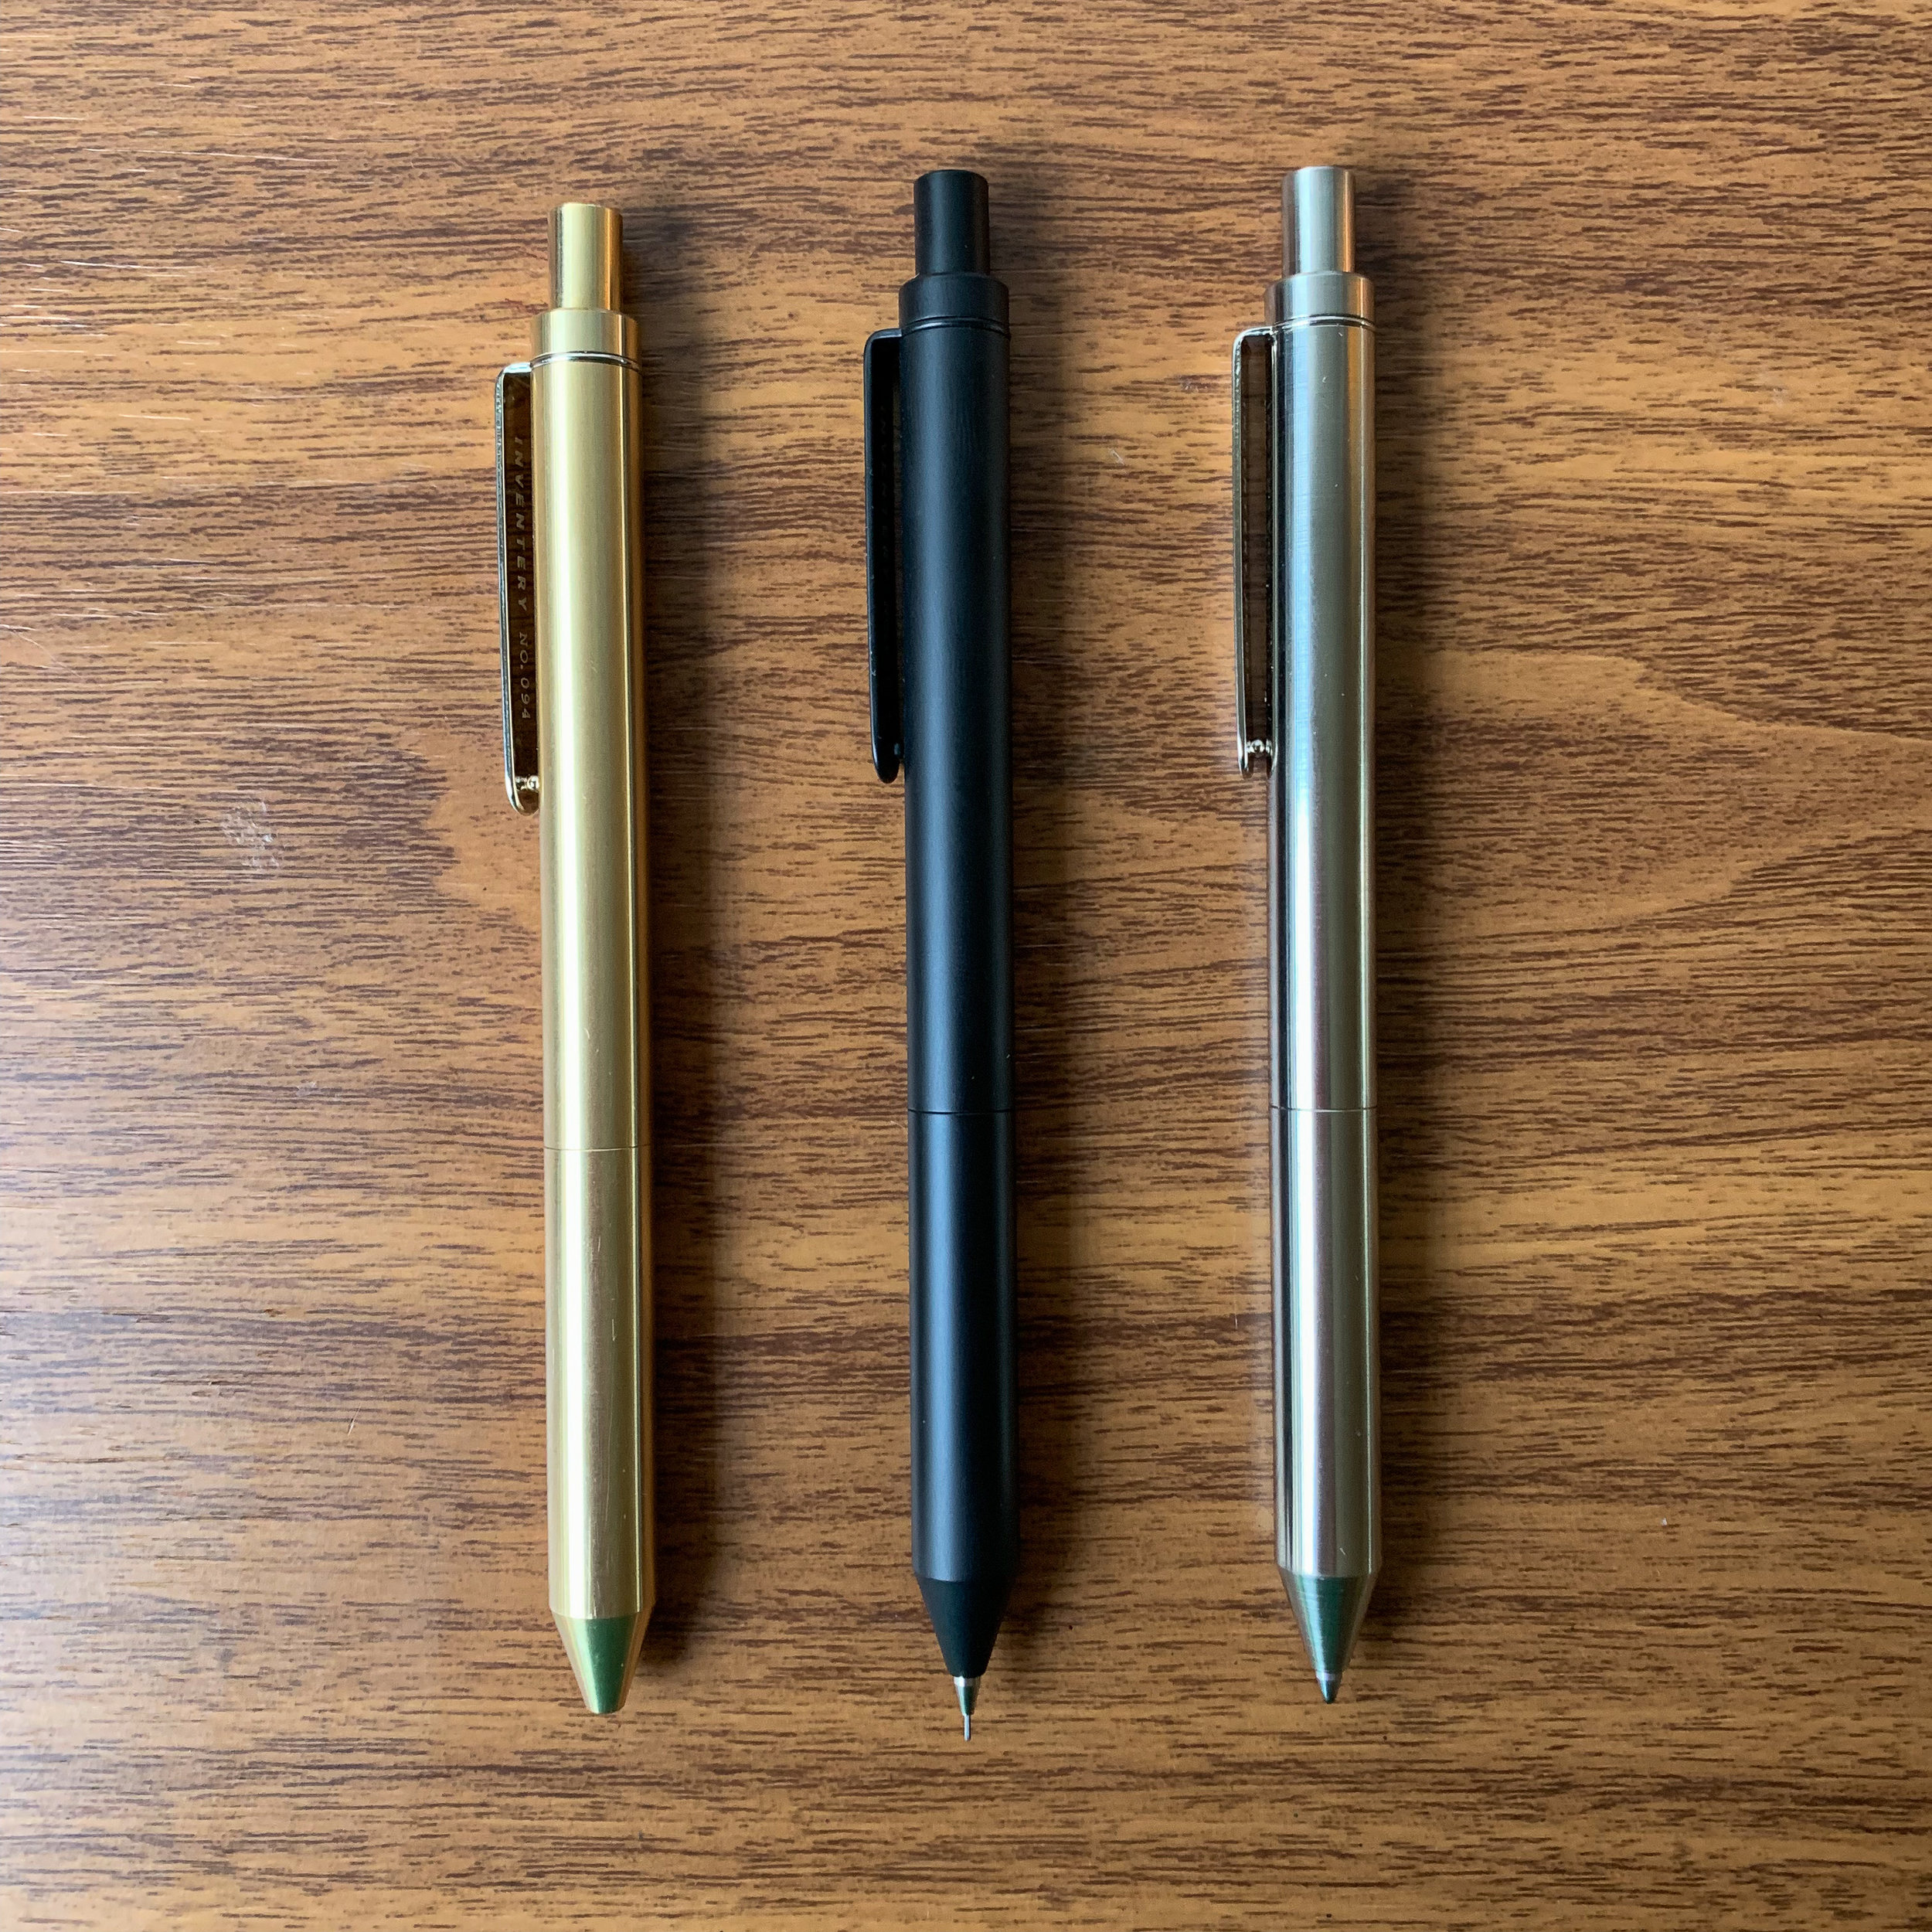 Inventery-Interchangeable-Pen-Pencil